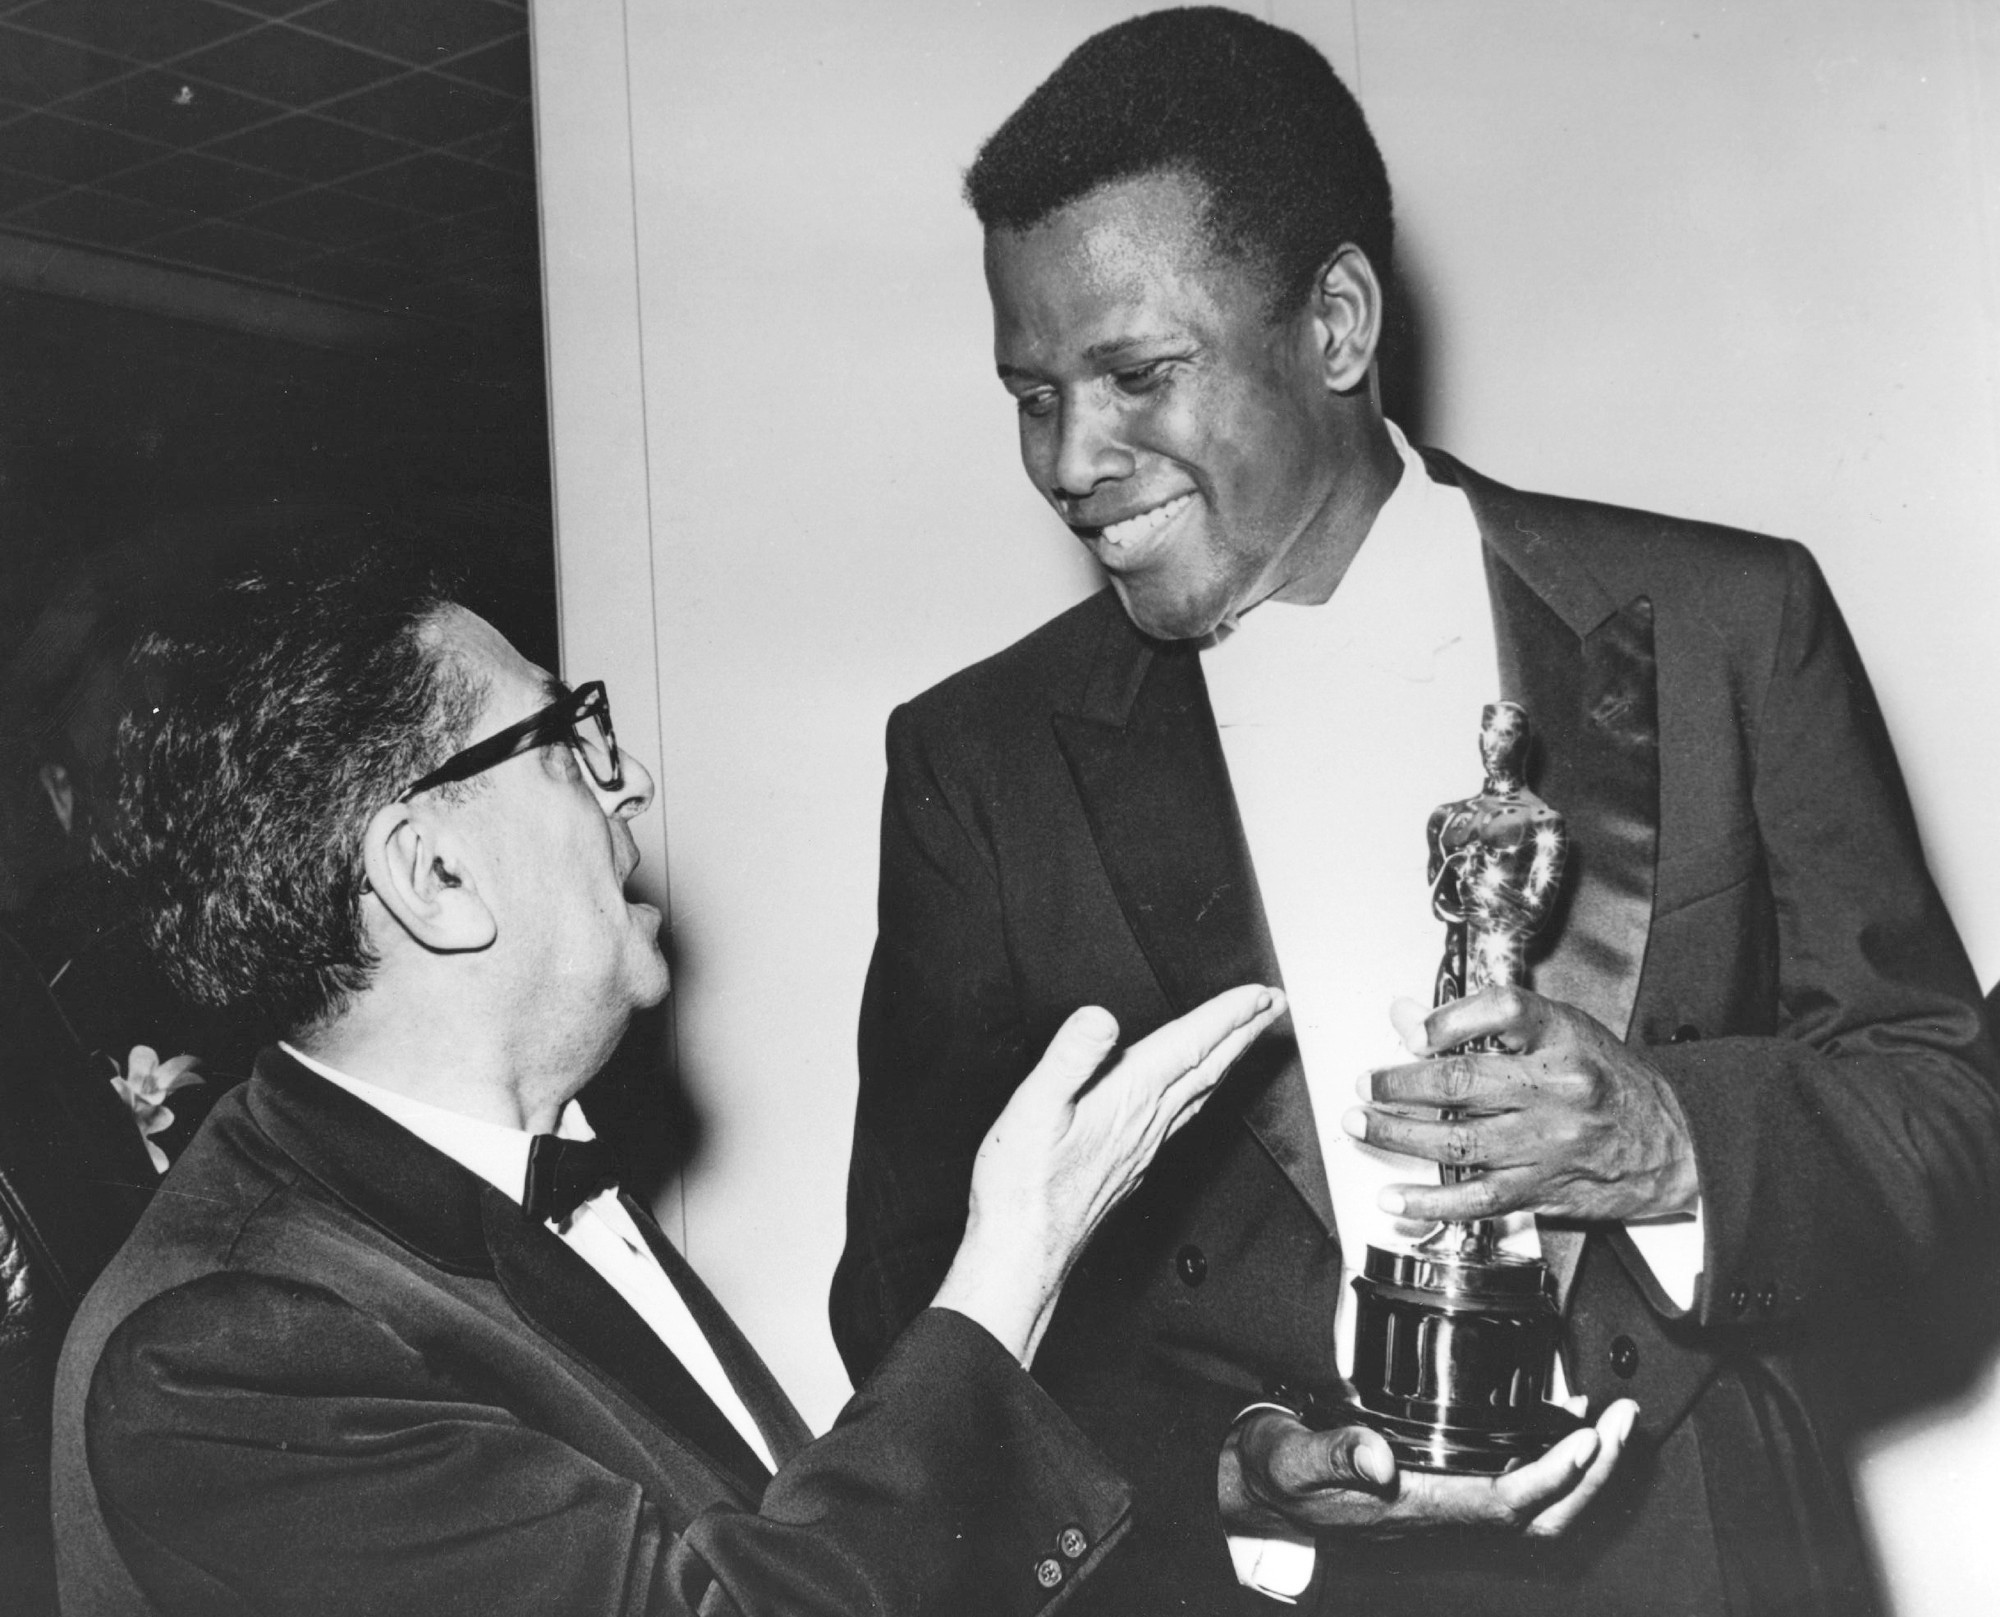 Oscars: A look back at some early, pioneering roles for black actors - LA Times